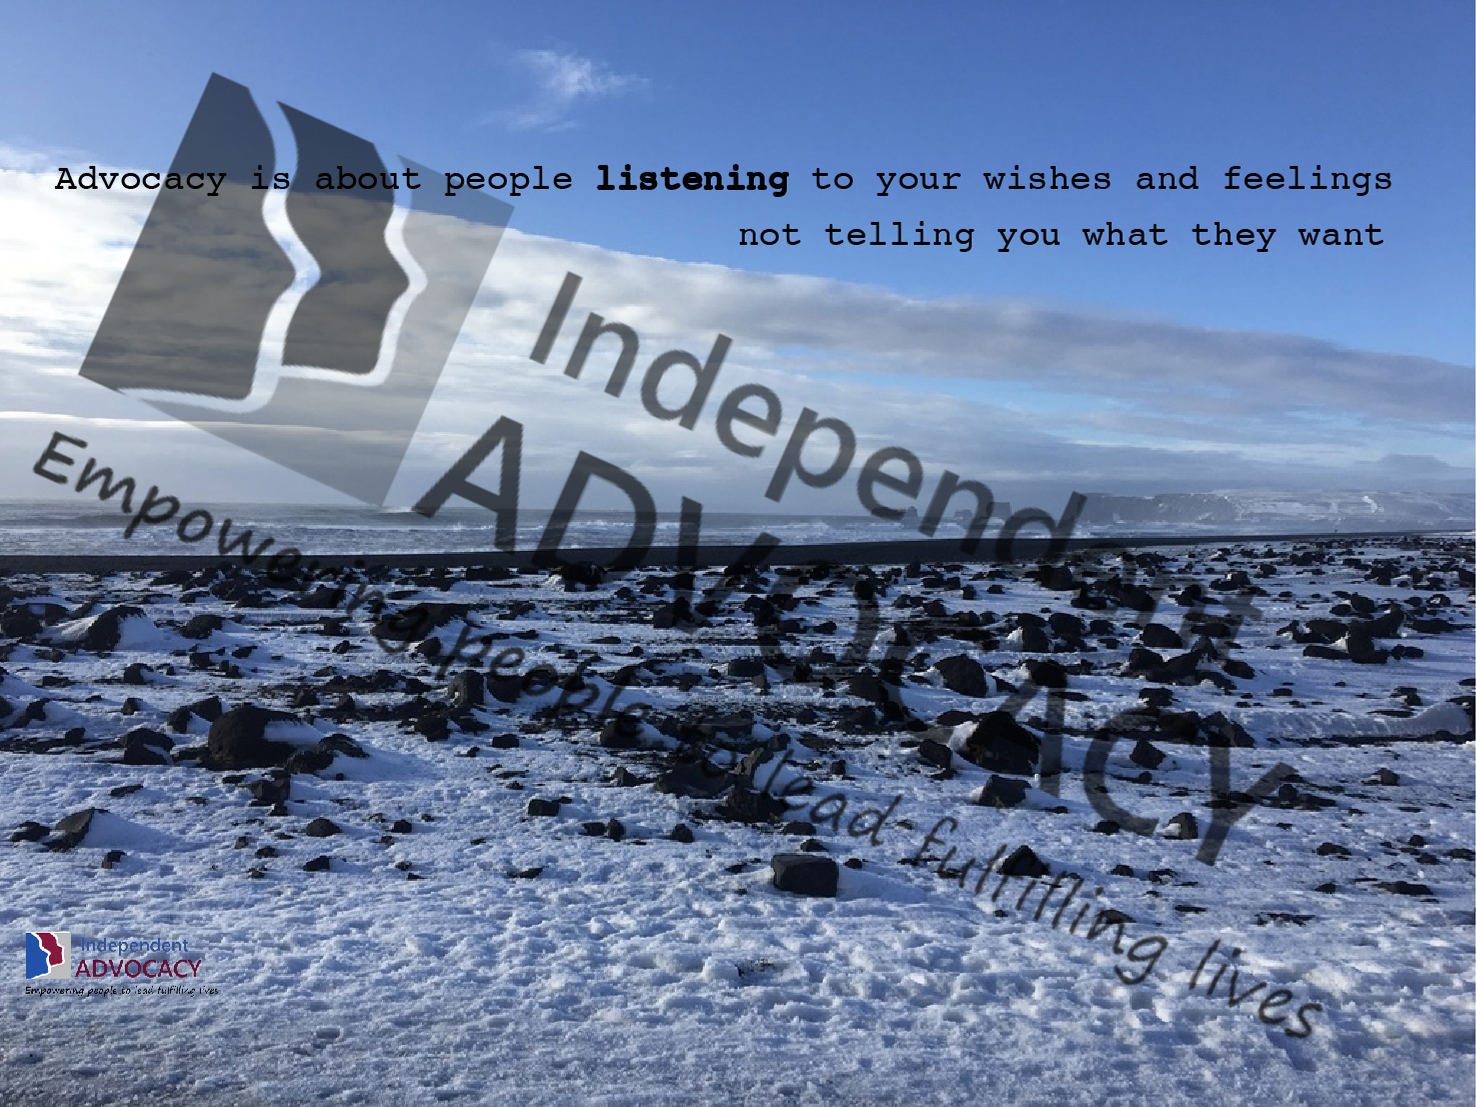 Advocacy Is About Listening wallpaper